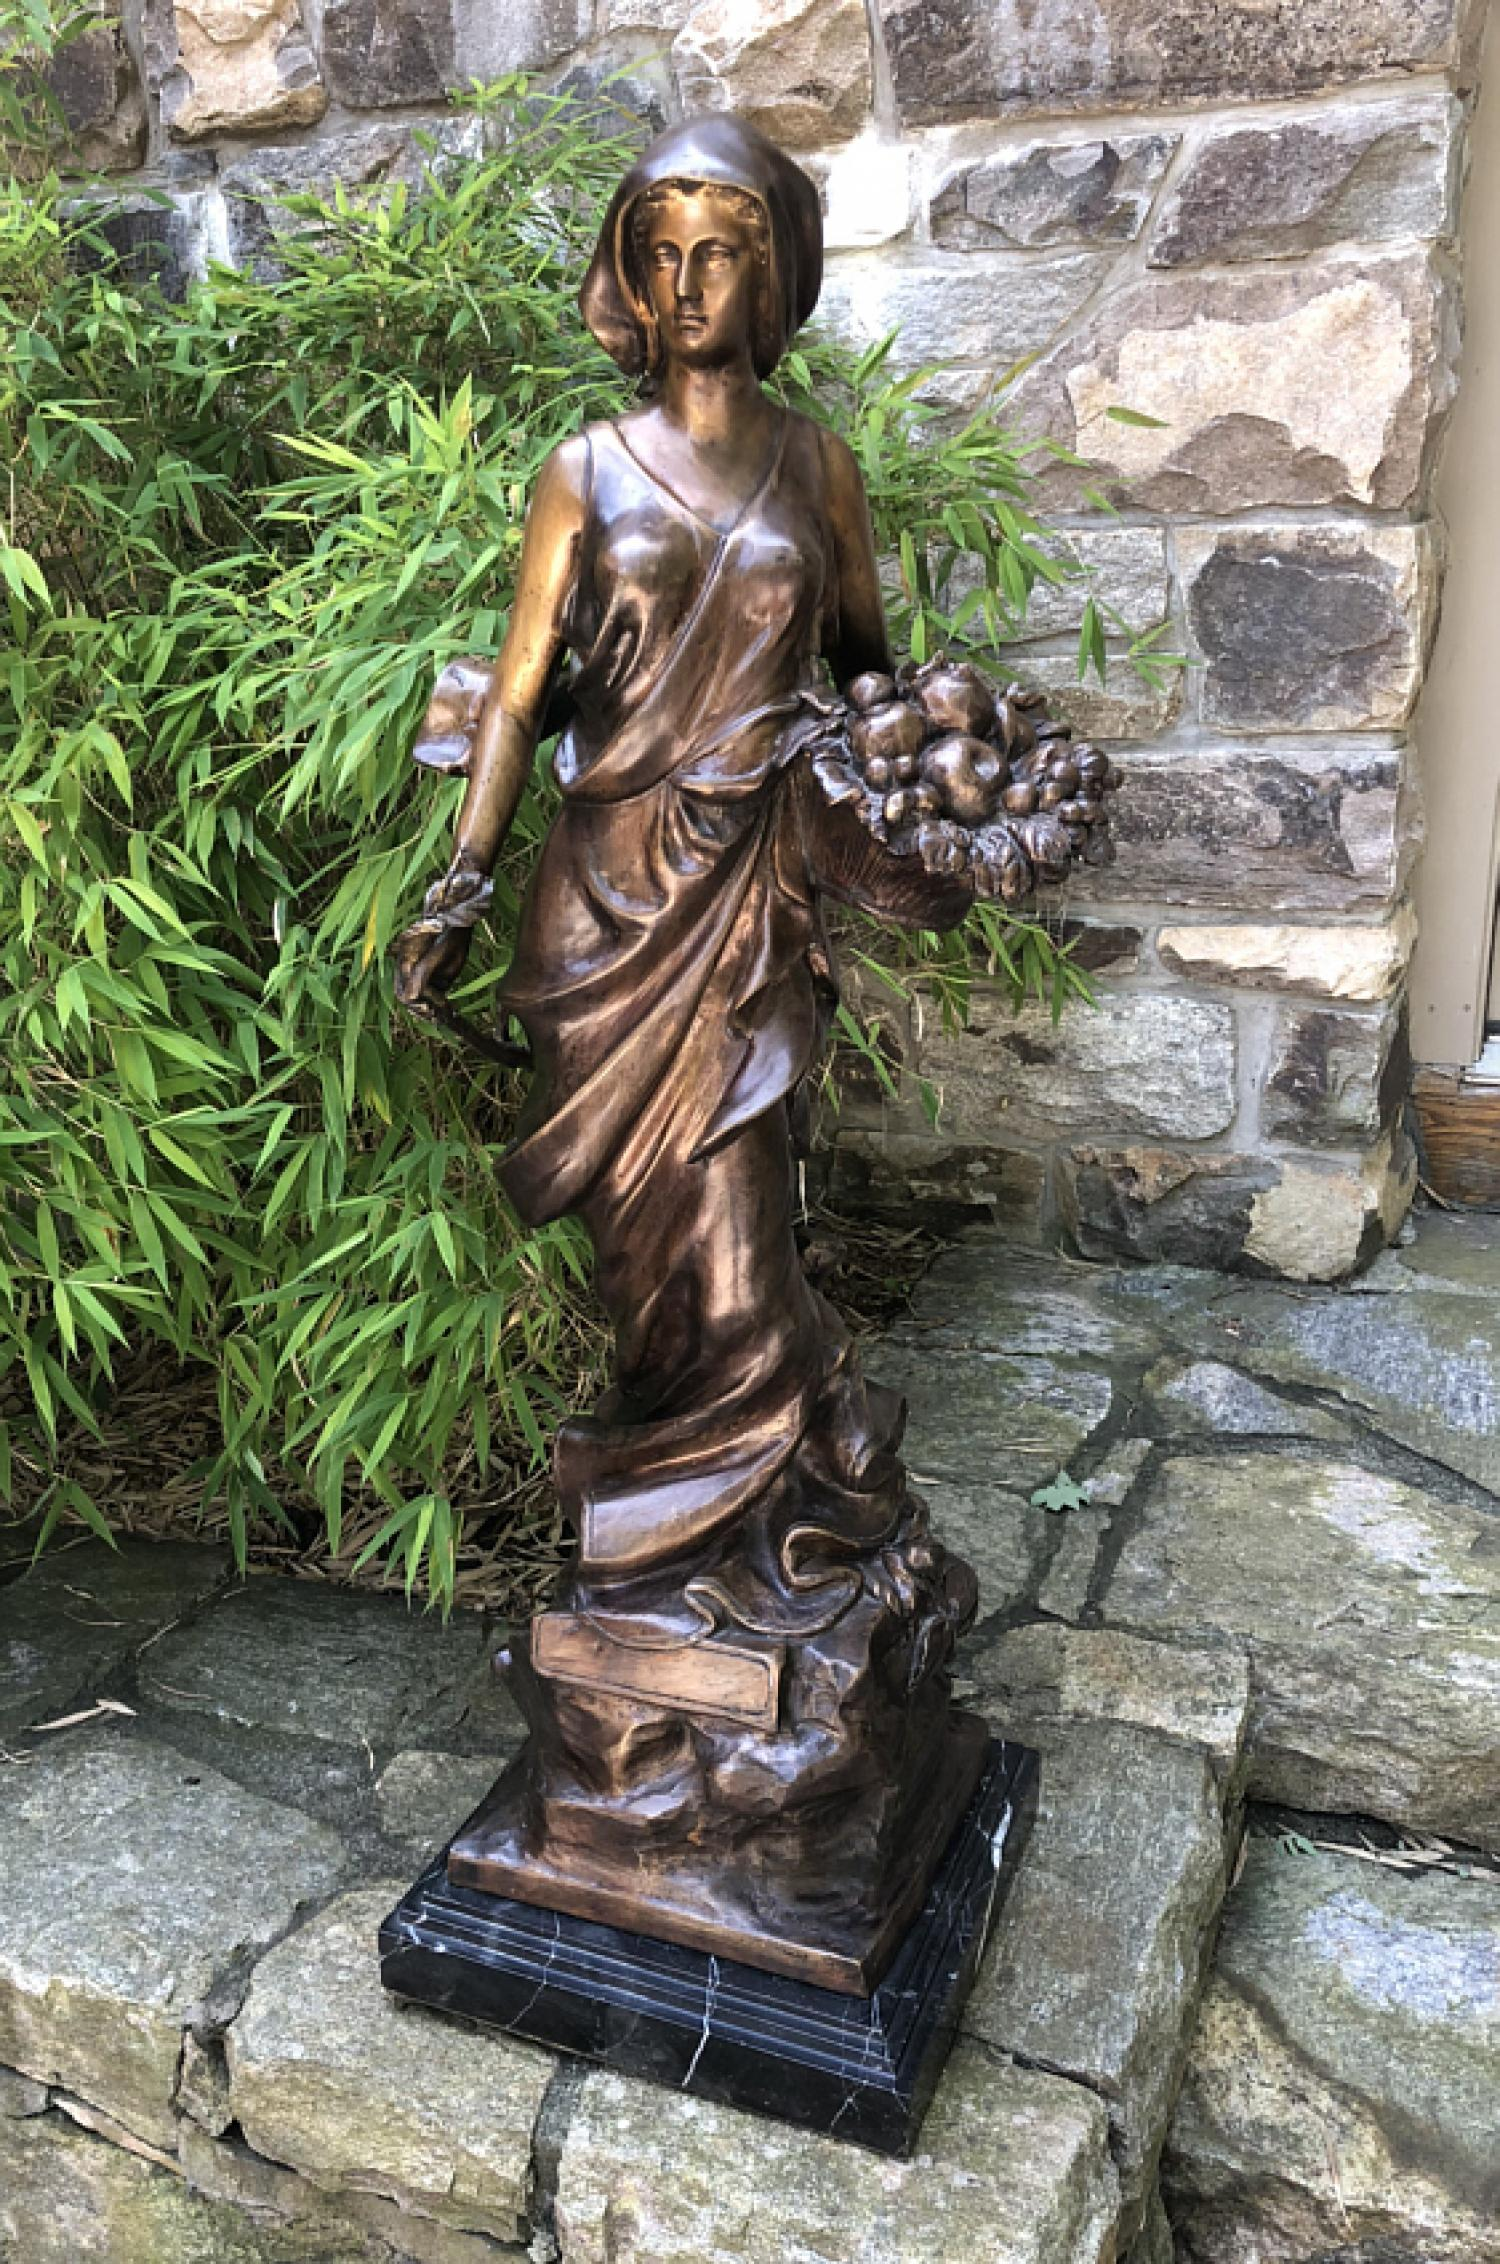 Tall bronze sculpture of a young woman